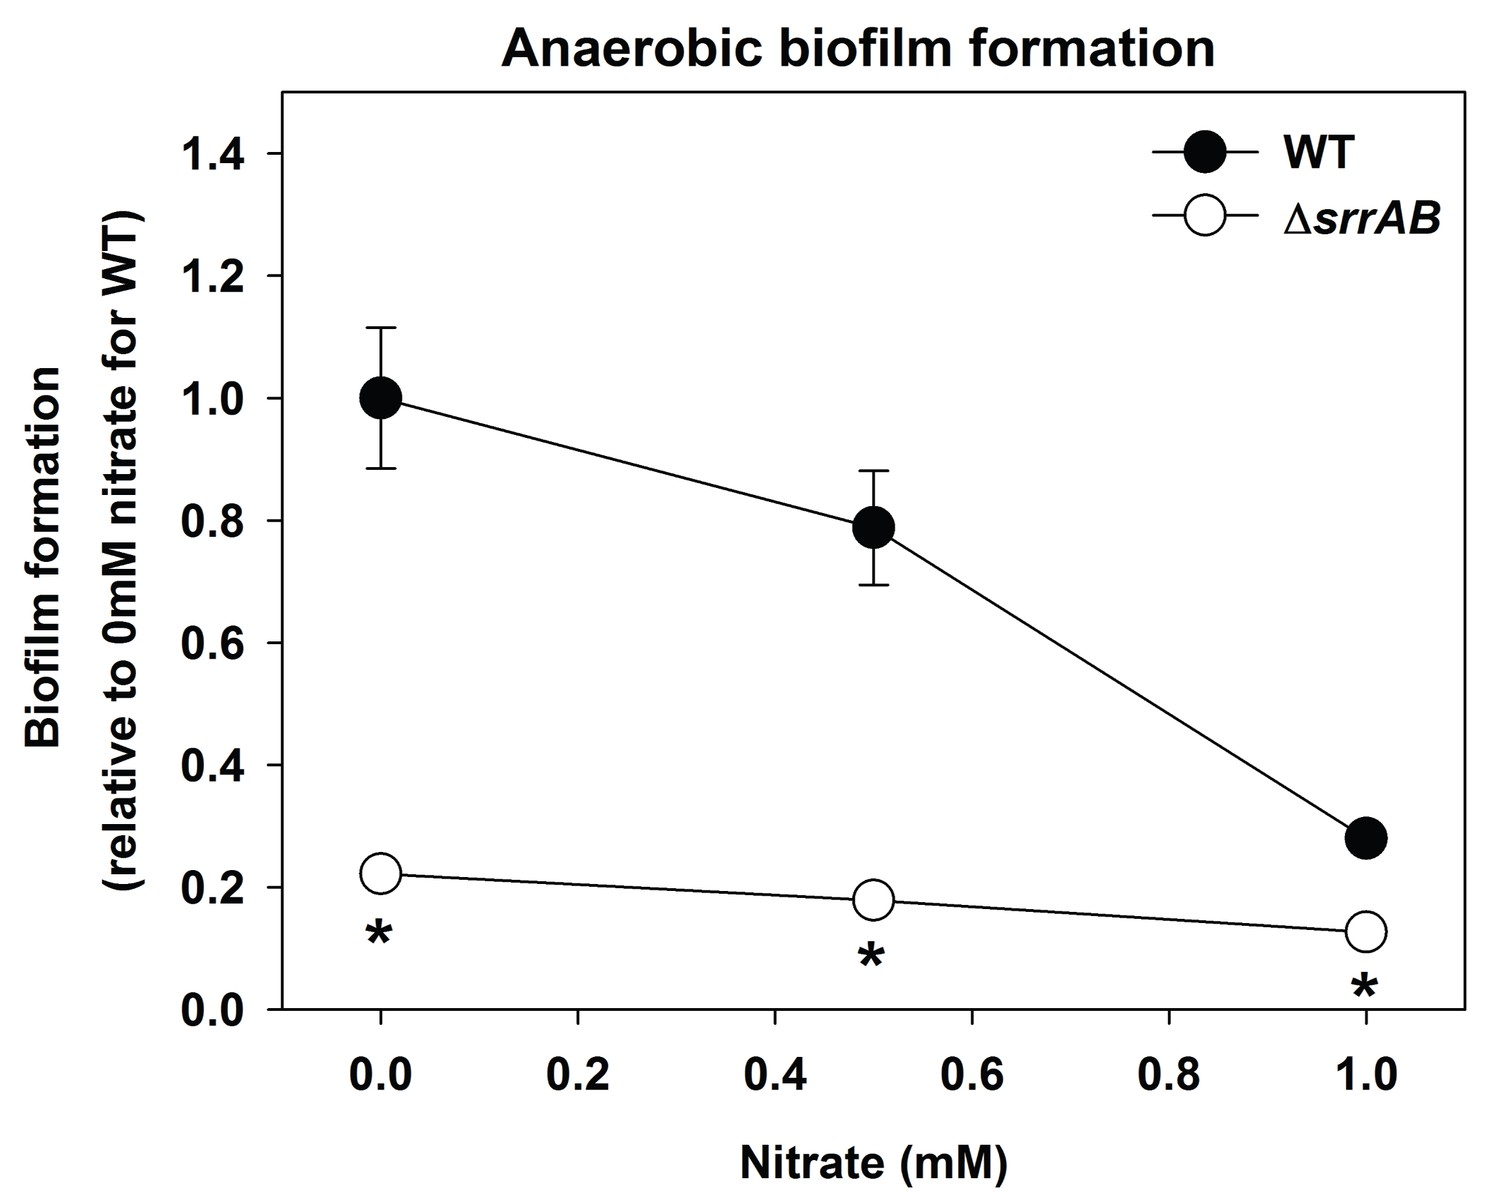 Biofilm Formation Of A Δsrrab Strain Is Largely Unaltered Upon Supplementing Anaerobic Biofilms With The Alternate Terminal Electron Acceptor Nitrate